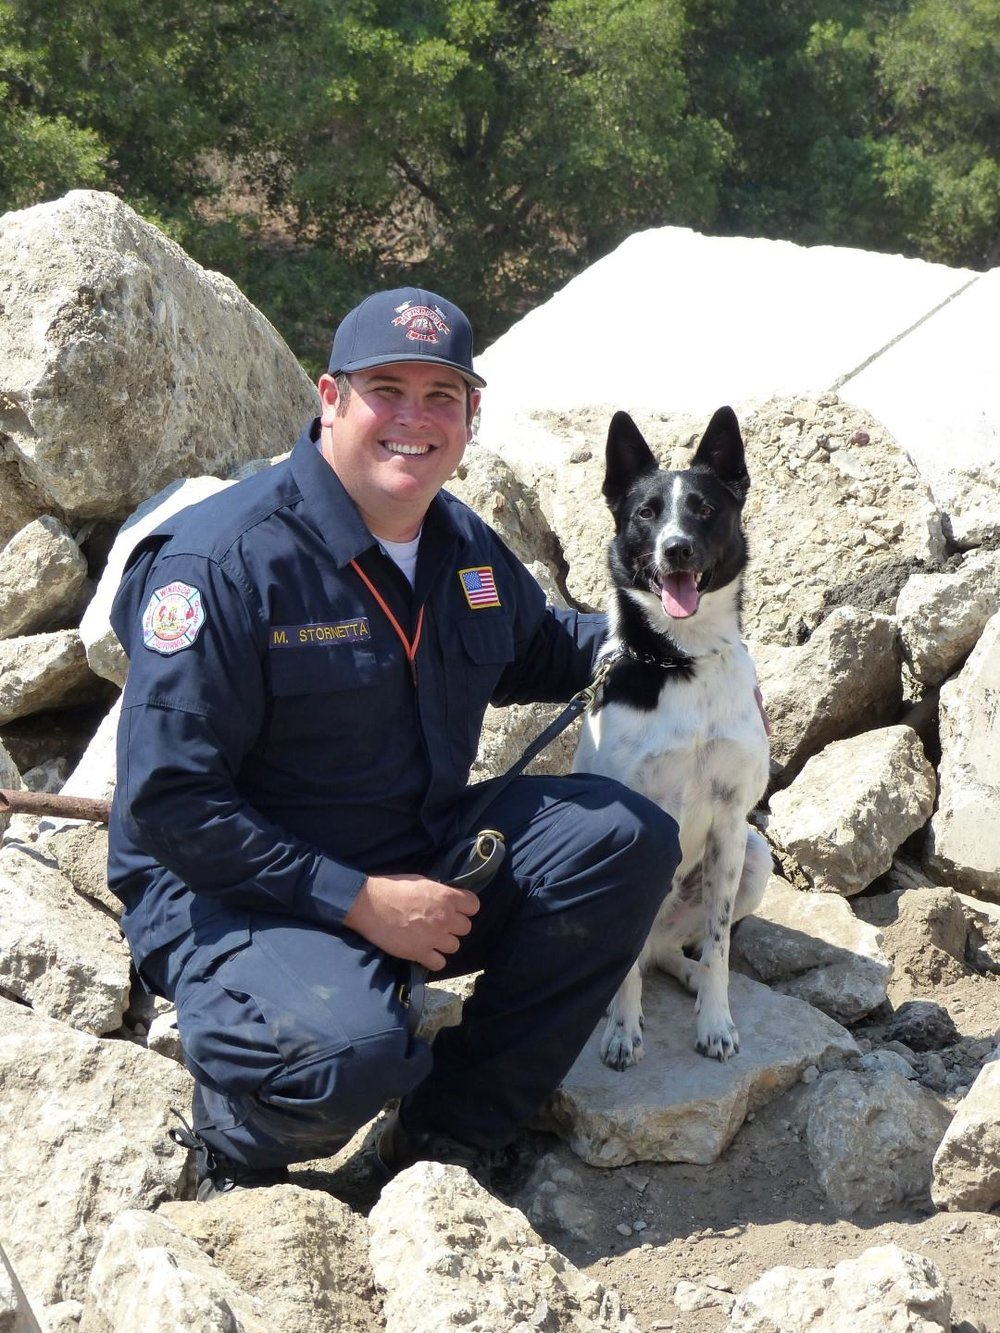 SDF Mike Stornetta and Rocket.jpg